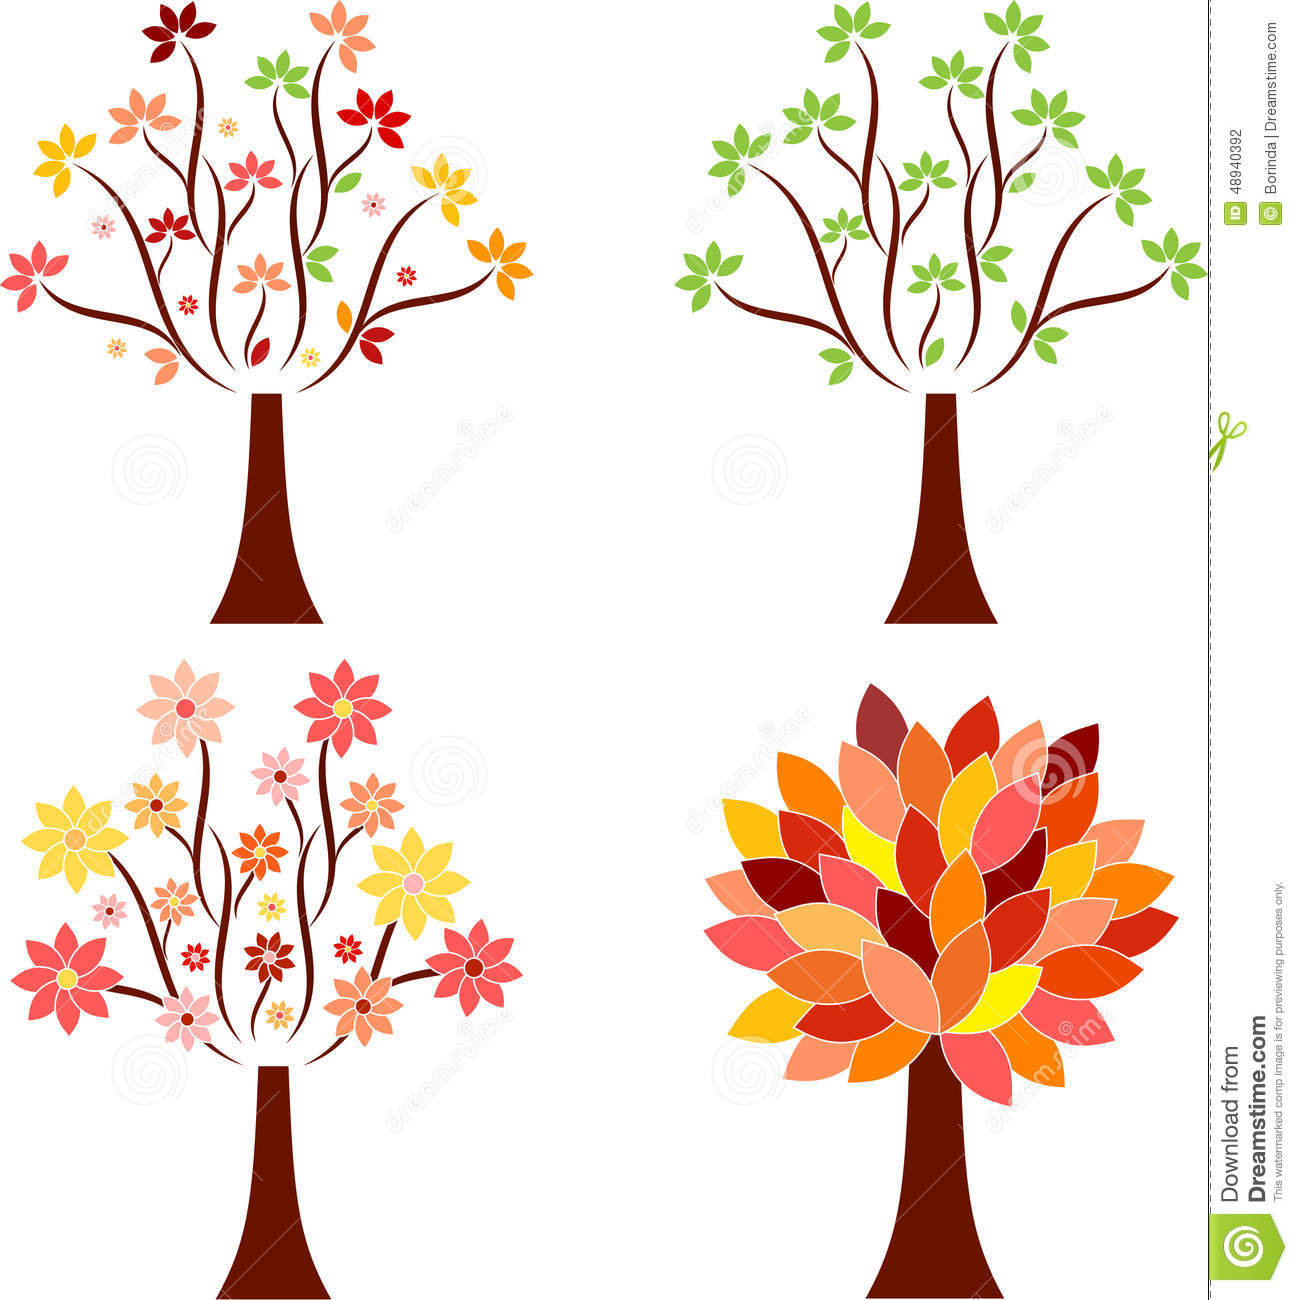 Seasonal tree illustrations stock illustration image 48940392 - Flowers that bloom from spring to fall ...